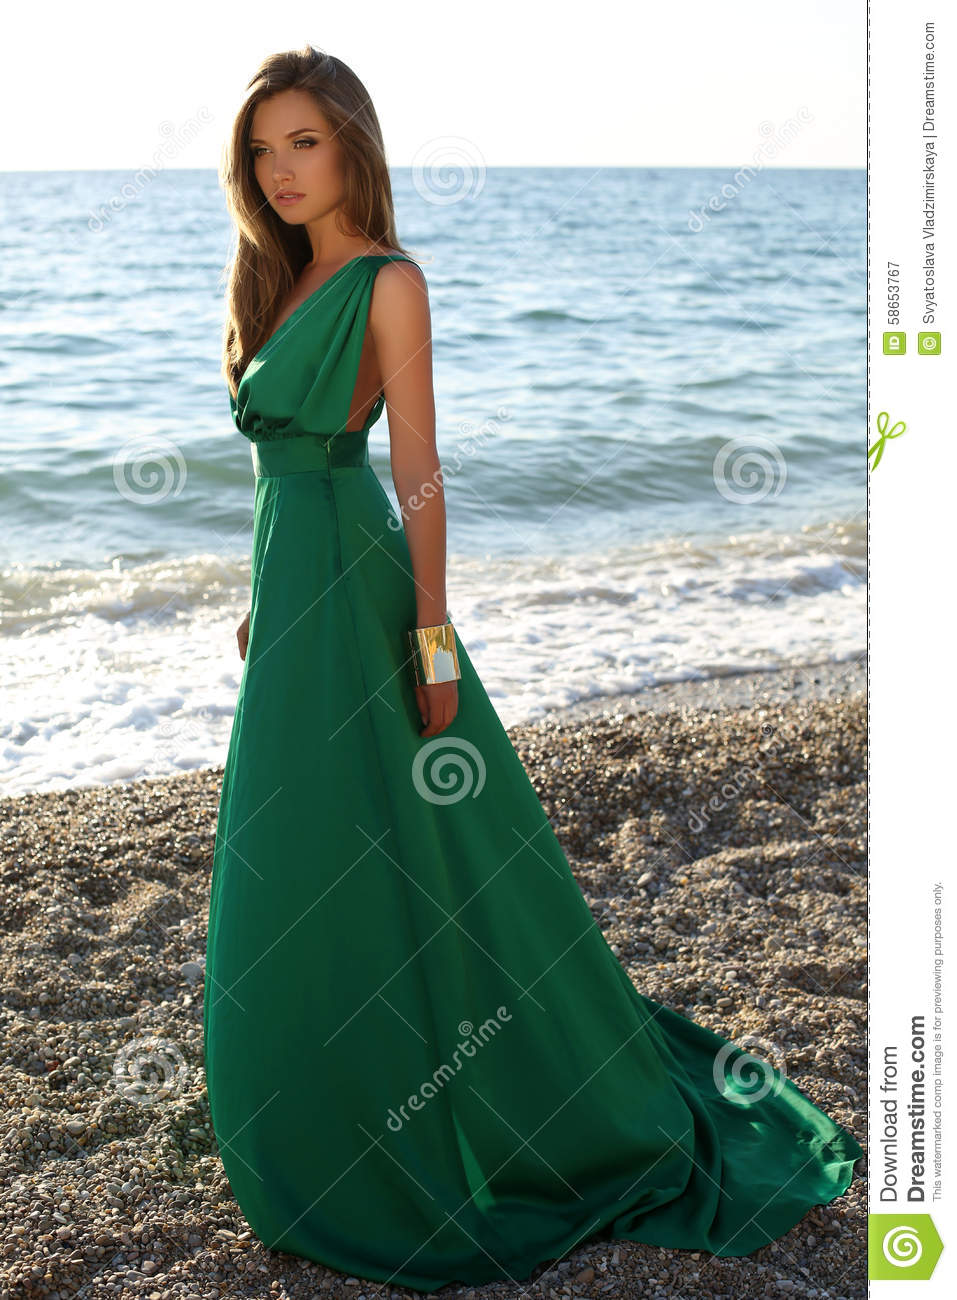 Accessory For Hair: Beautiful Girl With Blond Hair Wears Luxurious Green Dress